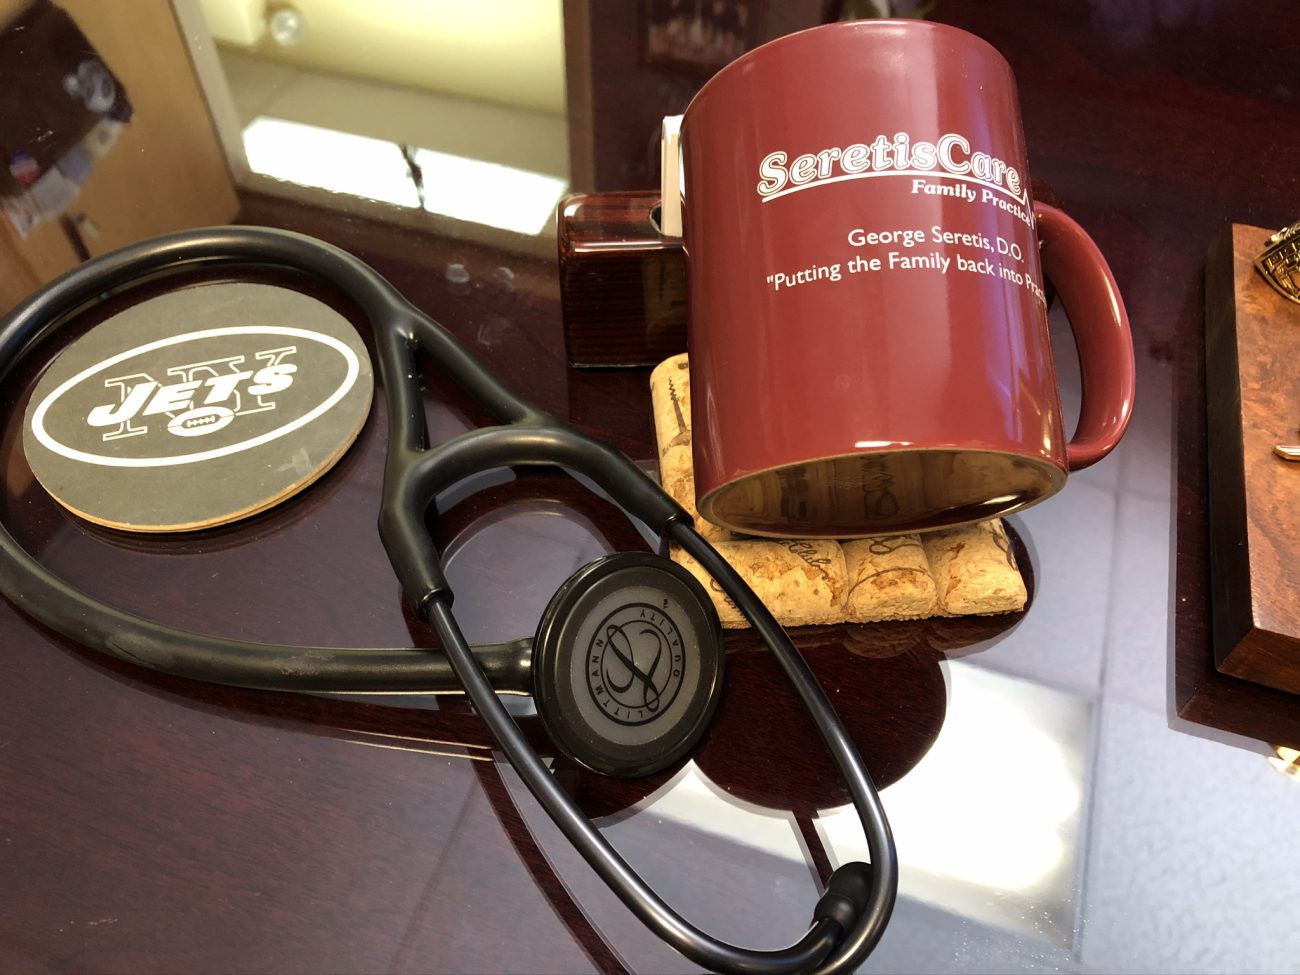 Seretiscare mug and stethoscope on desktop